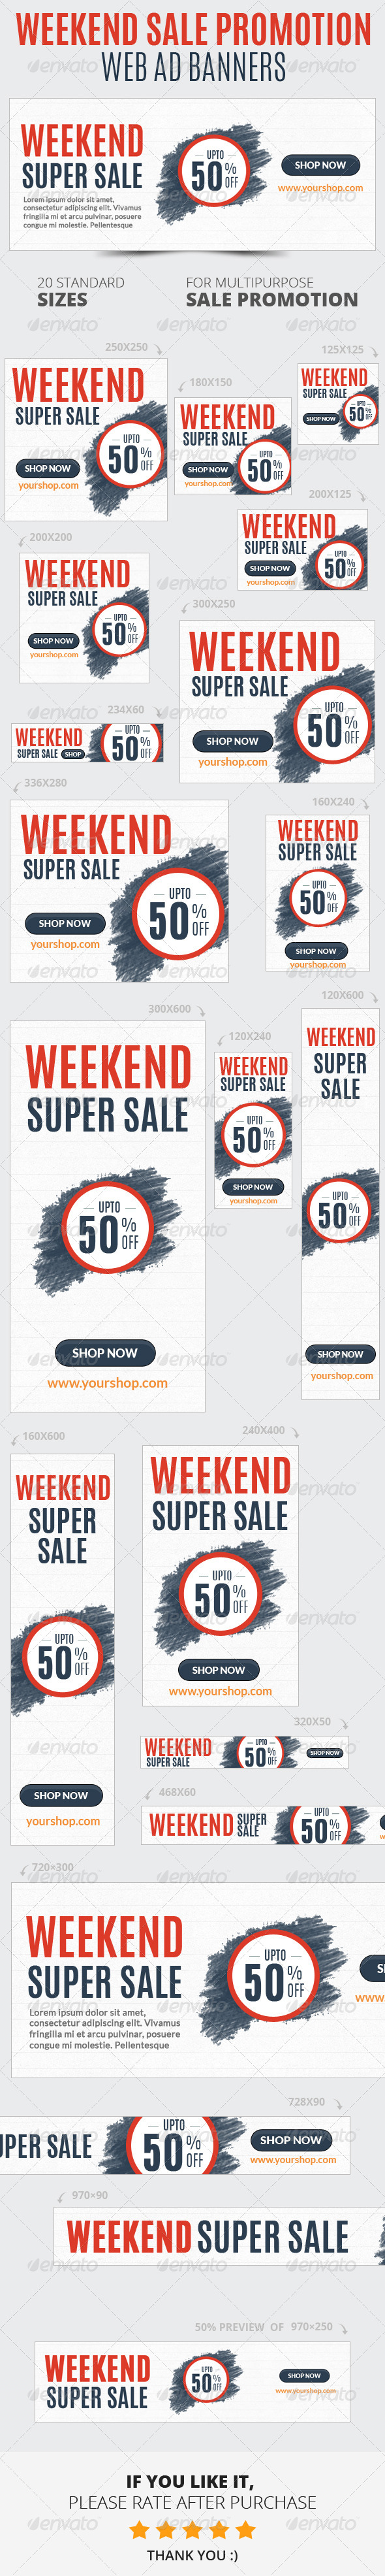 GraphicRiver Weekend Sale Promotion Web Ad Banners 6712533